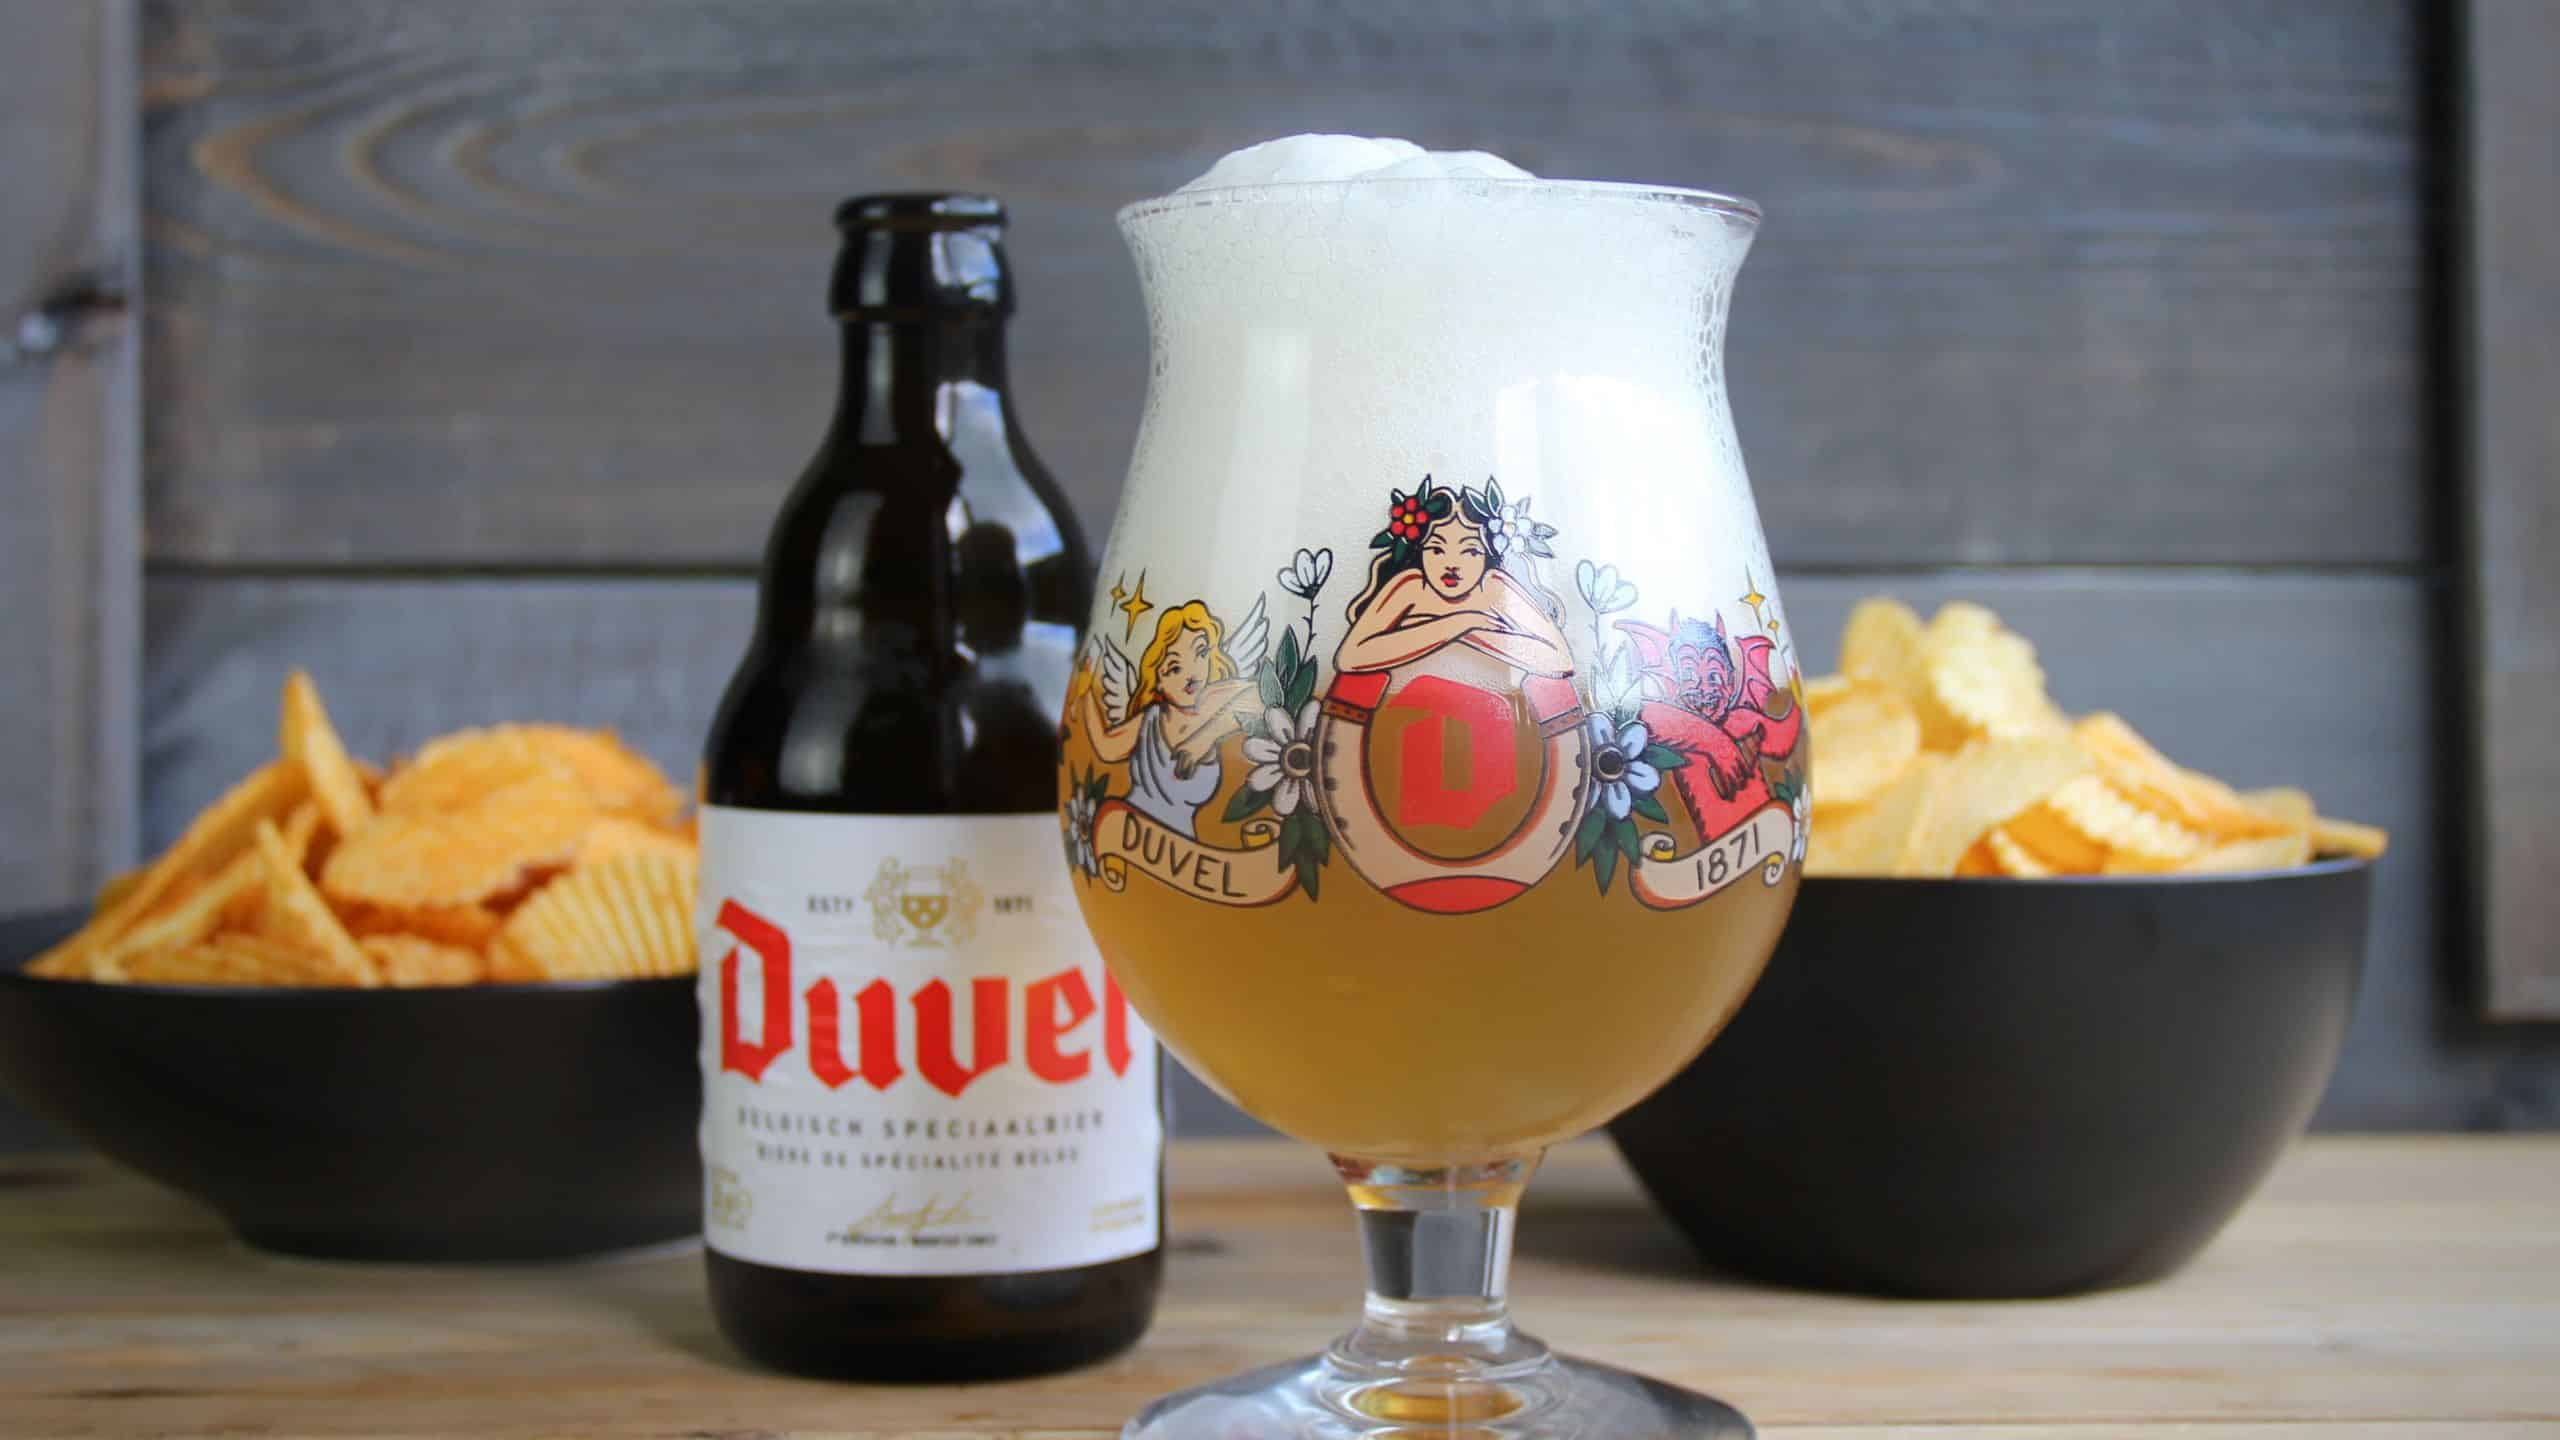 Duvel art glass Morrison Schiffmacher 1